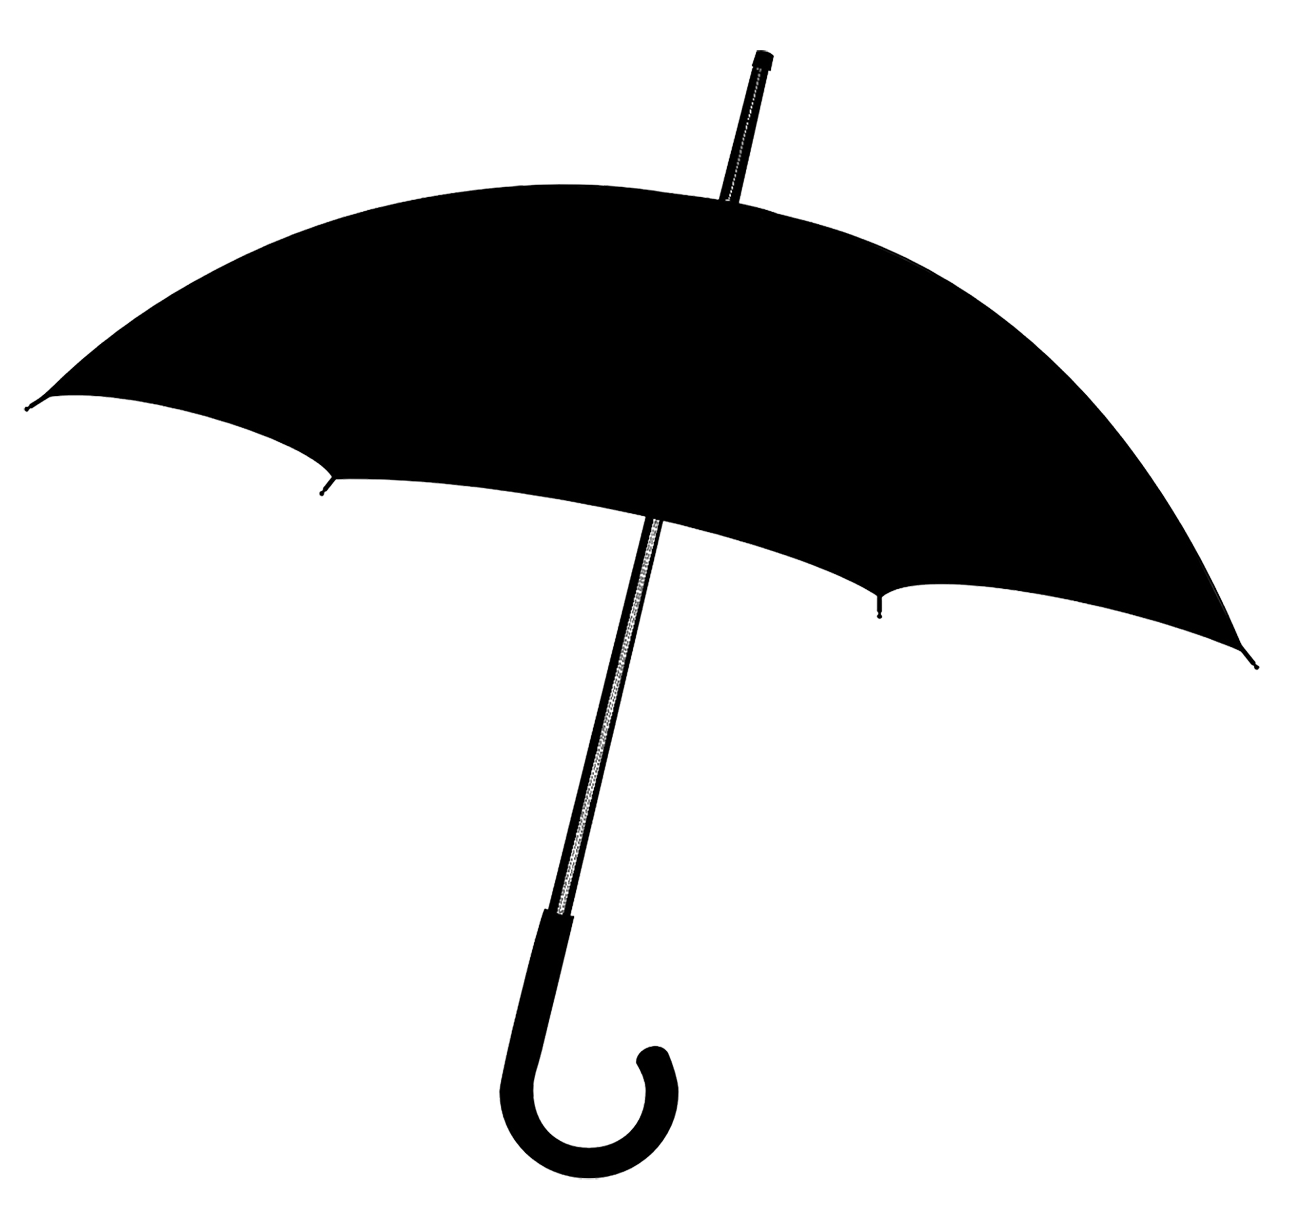 Black umbrella silhouette